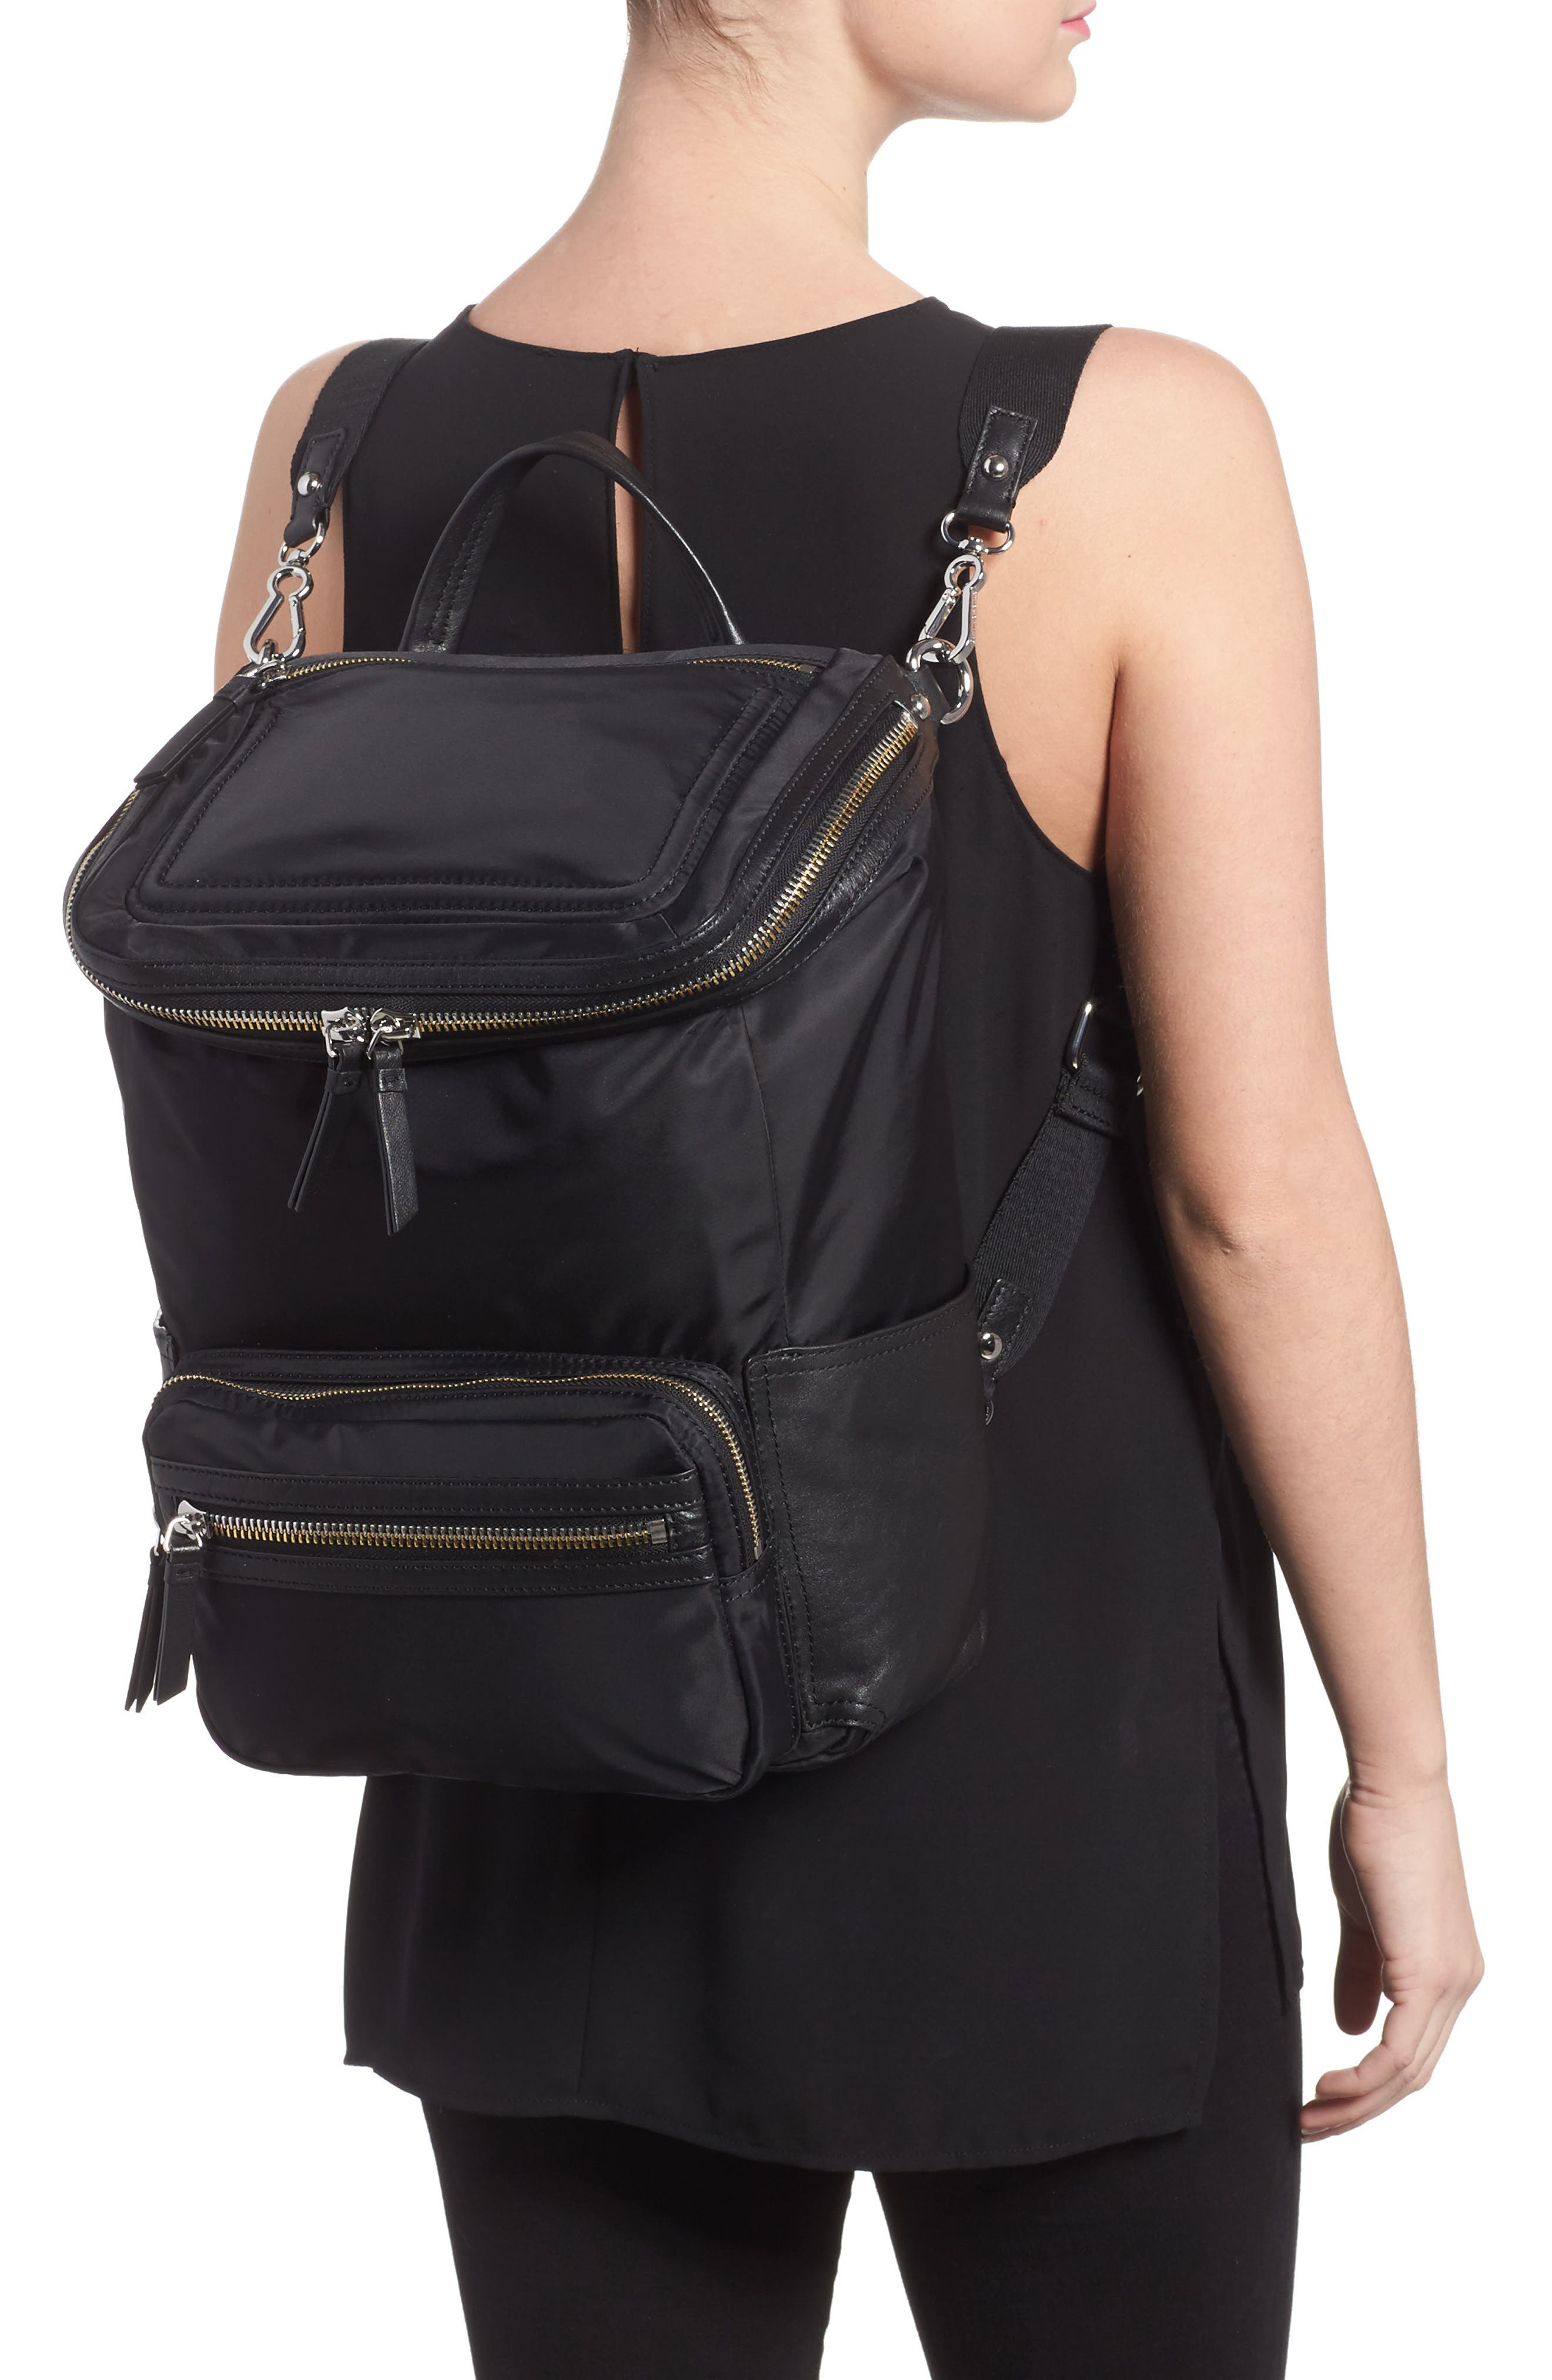 Patch NYL Leather & Nylon Backpack,                             Alternate thumbnail 2, color,                             002